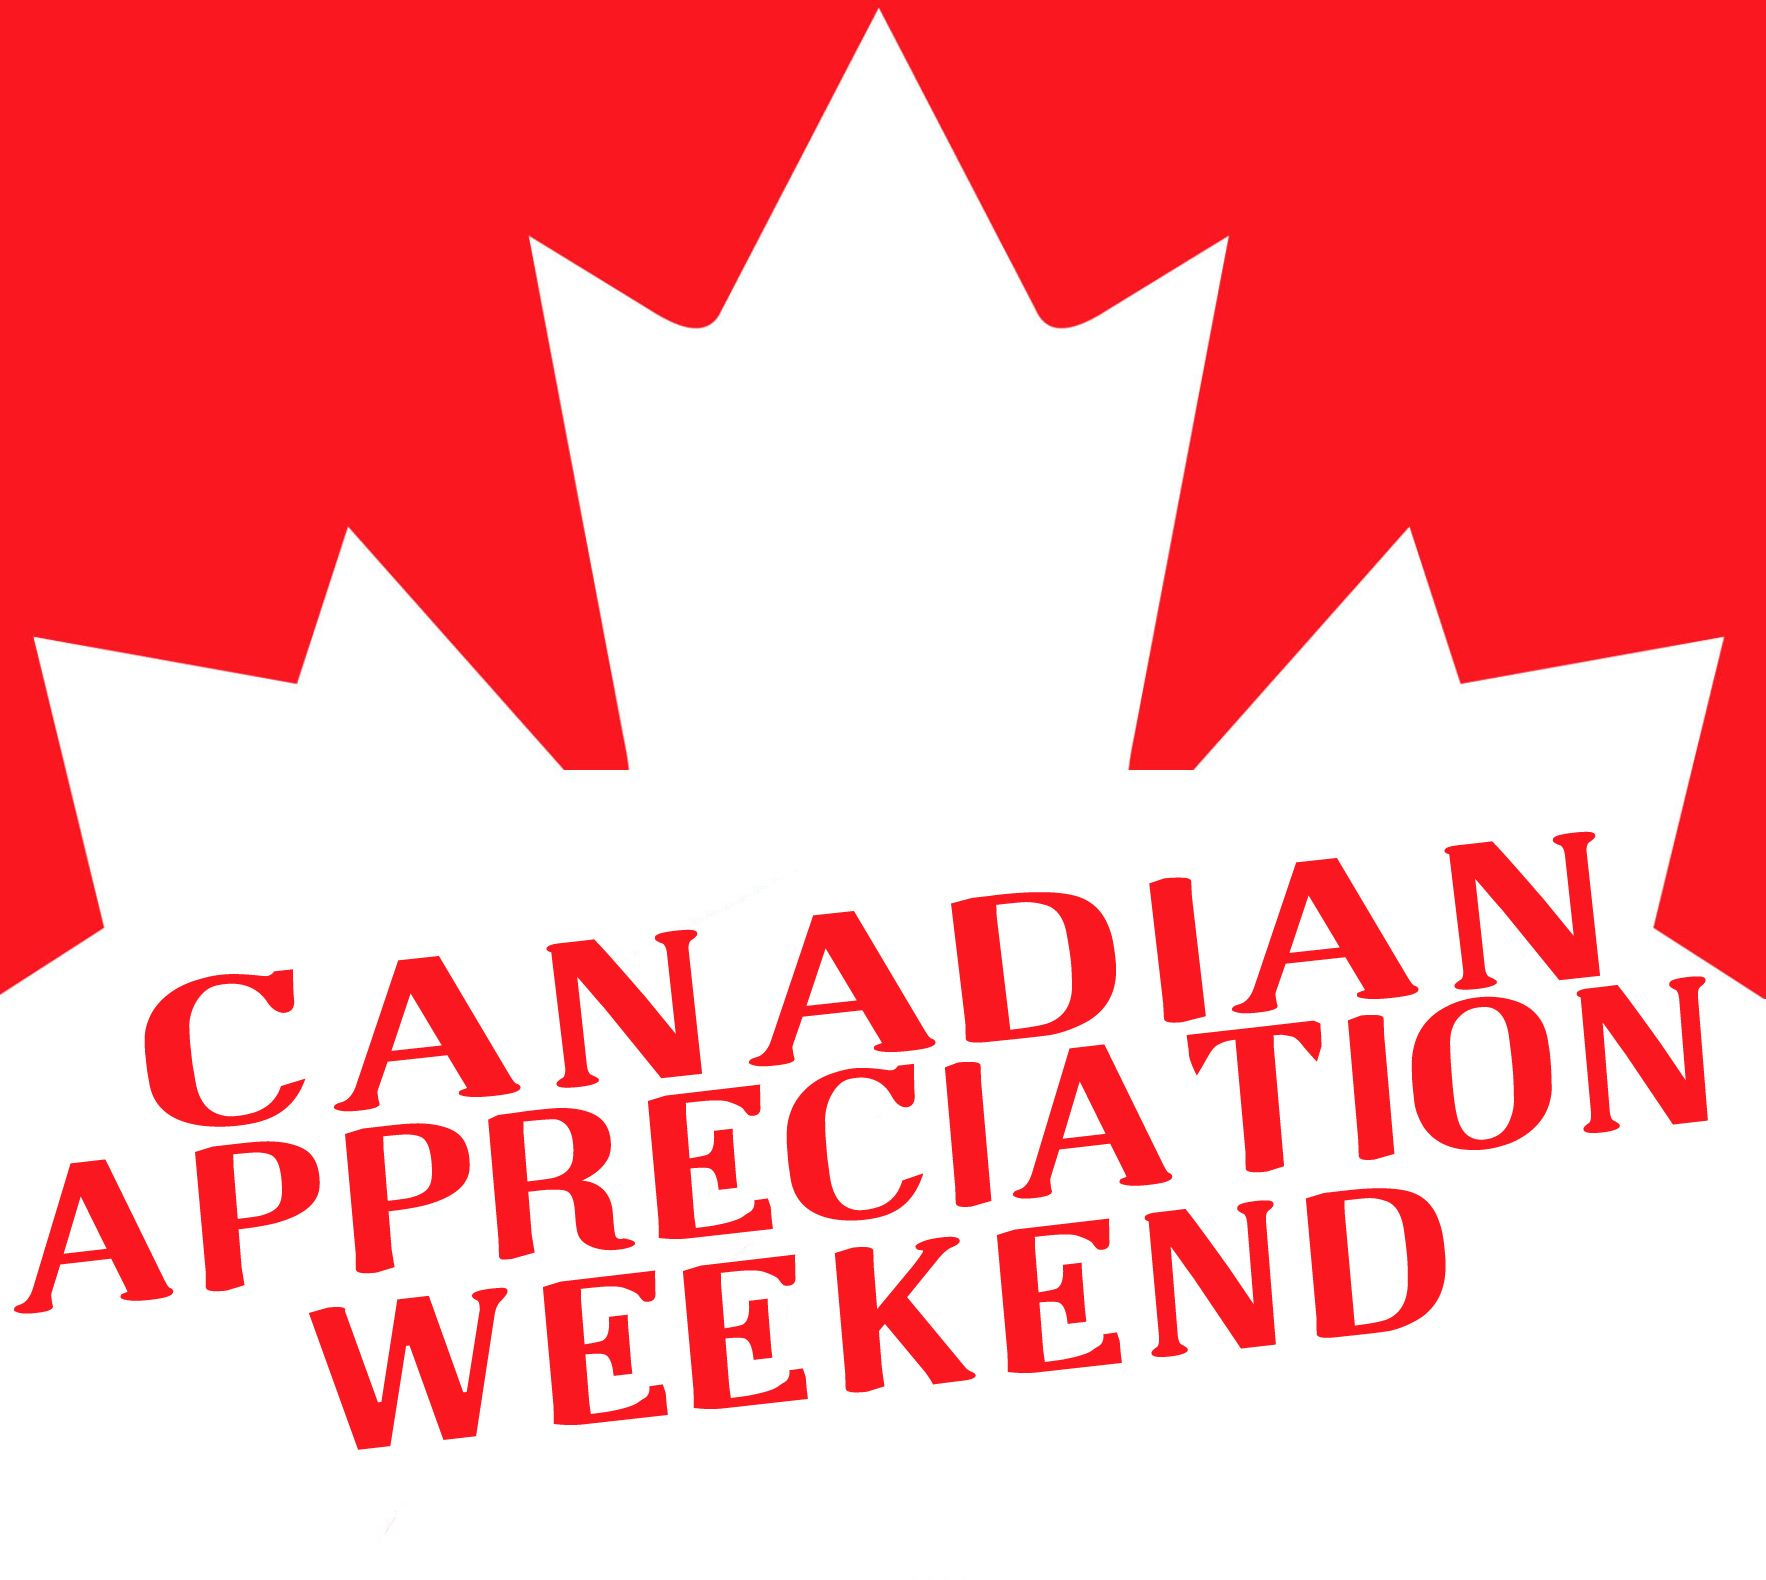 Canadian Appreciation Day Has Grown Into A Whole Weekend May 17 19 Canadian Shoppers Will Receive Discounts And Special Marine City Harbor Beach Appreciation